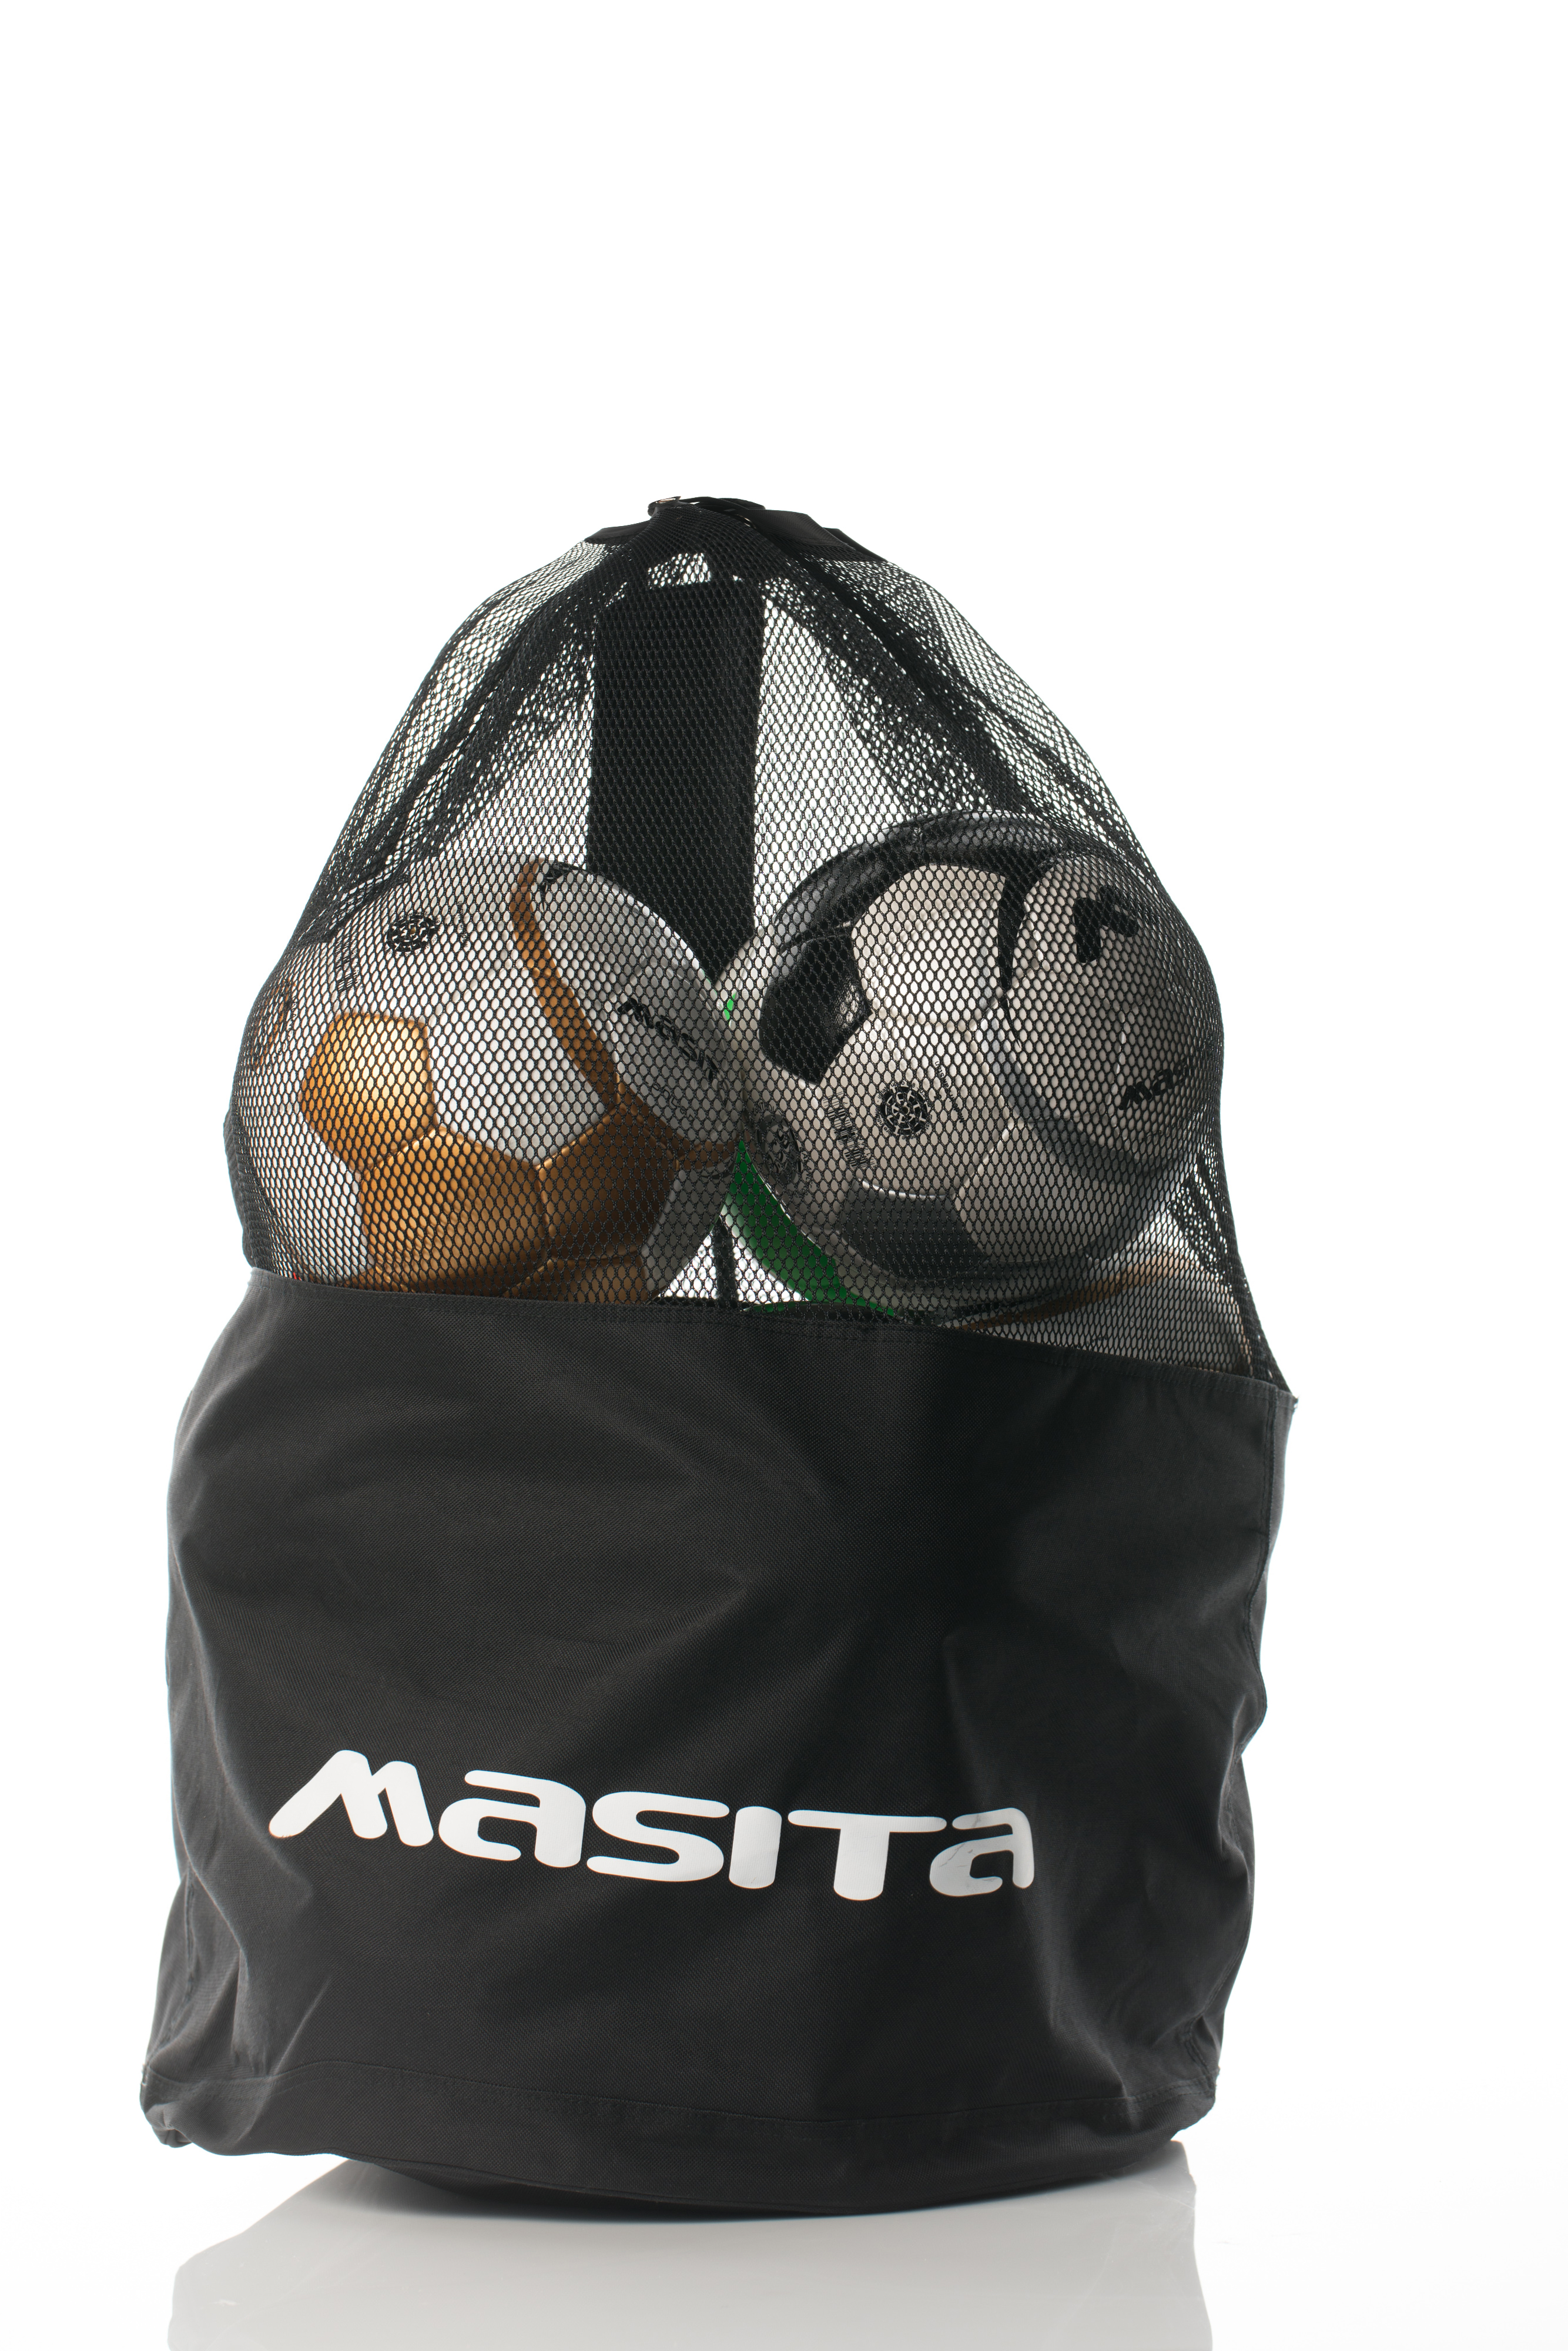 Mesh Ball Bag  Black